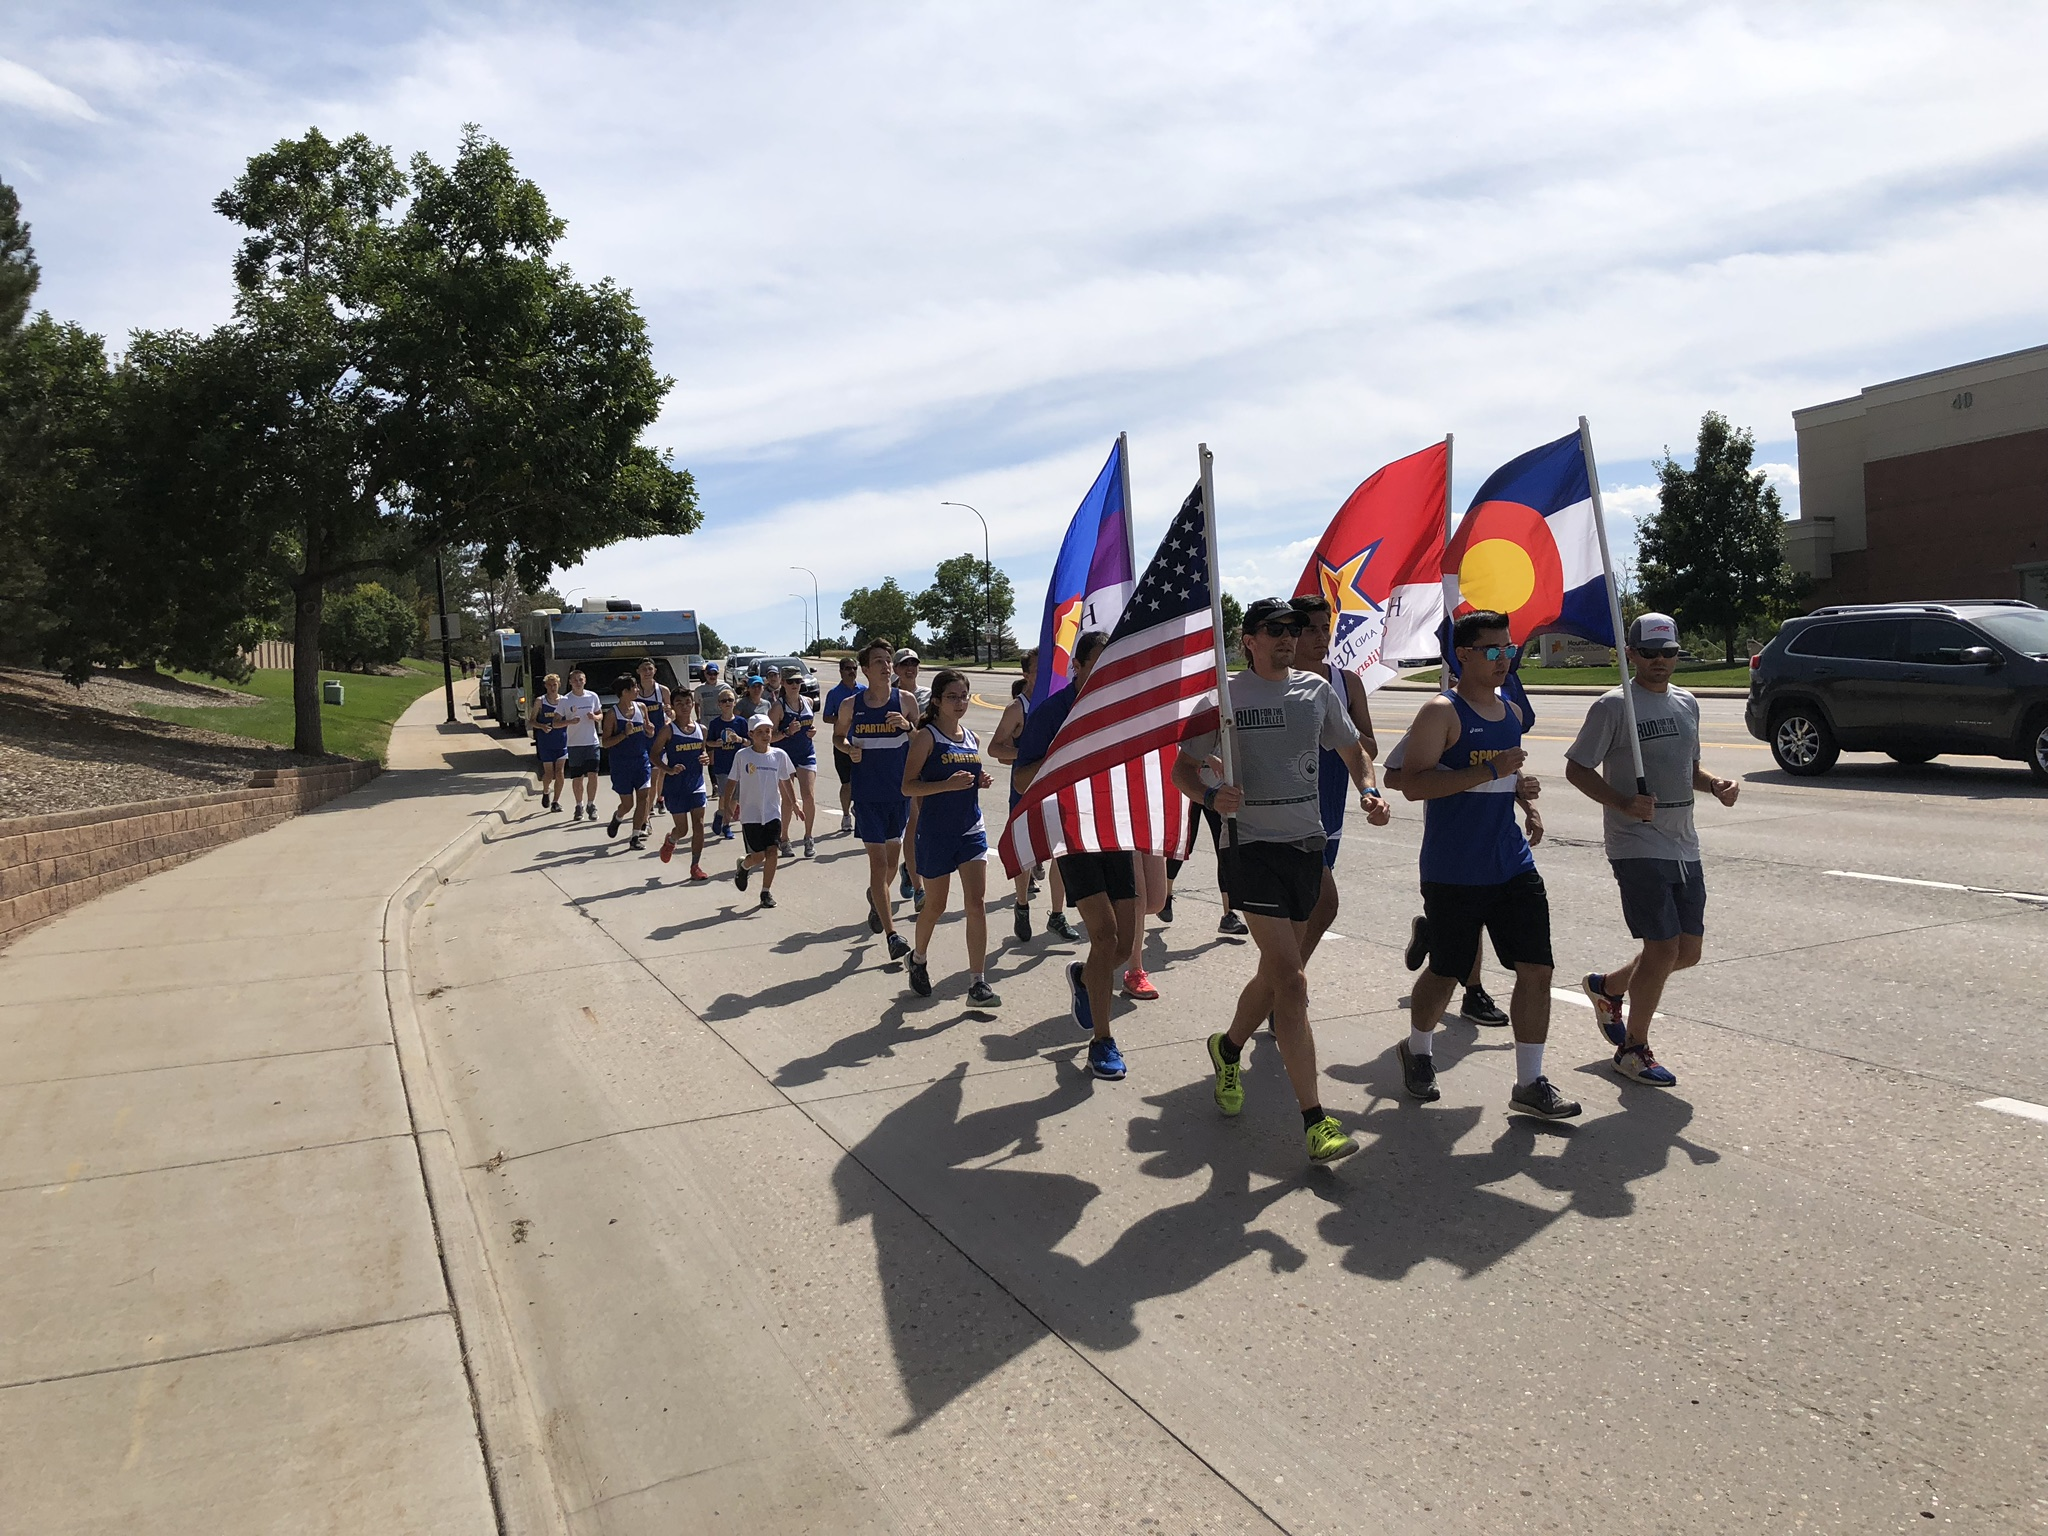 The Castillo Family, STEM School Cross Country, Veterans, and First Responders honored and remembered Kendrick Castillo on September 15, 2019 with The Colorado Run for the Fallen. Kendrick was the first civilian honored in this national memorial for fallen Service Members and First Responders. He remains in our hearts, forever. We will see him again.